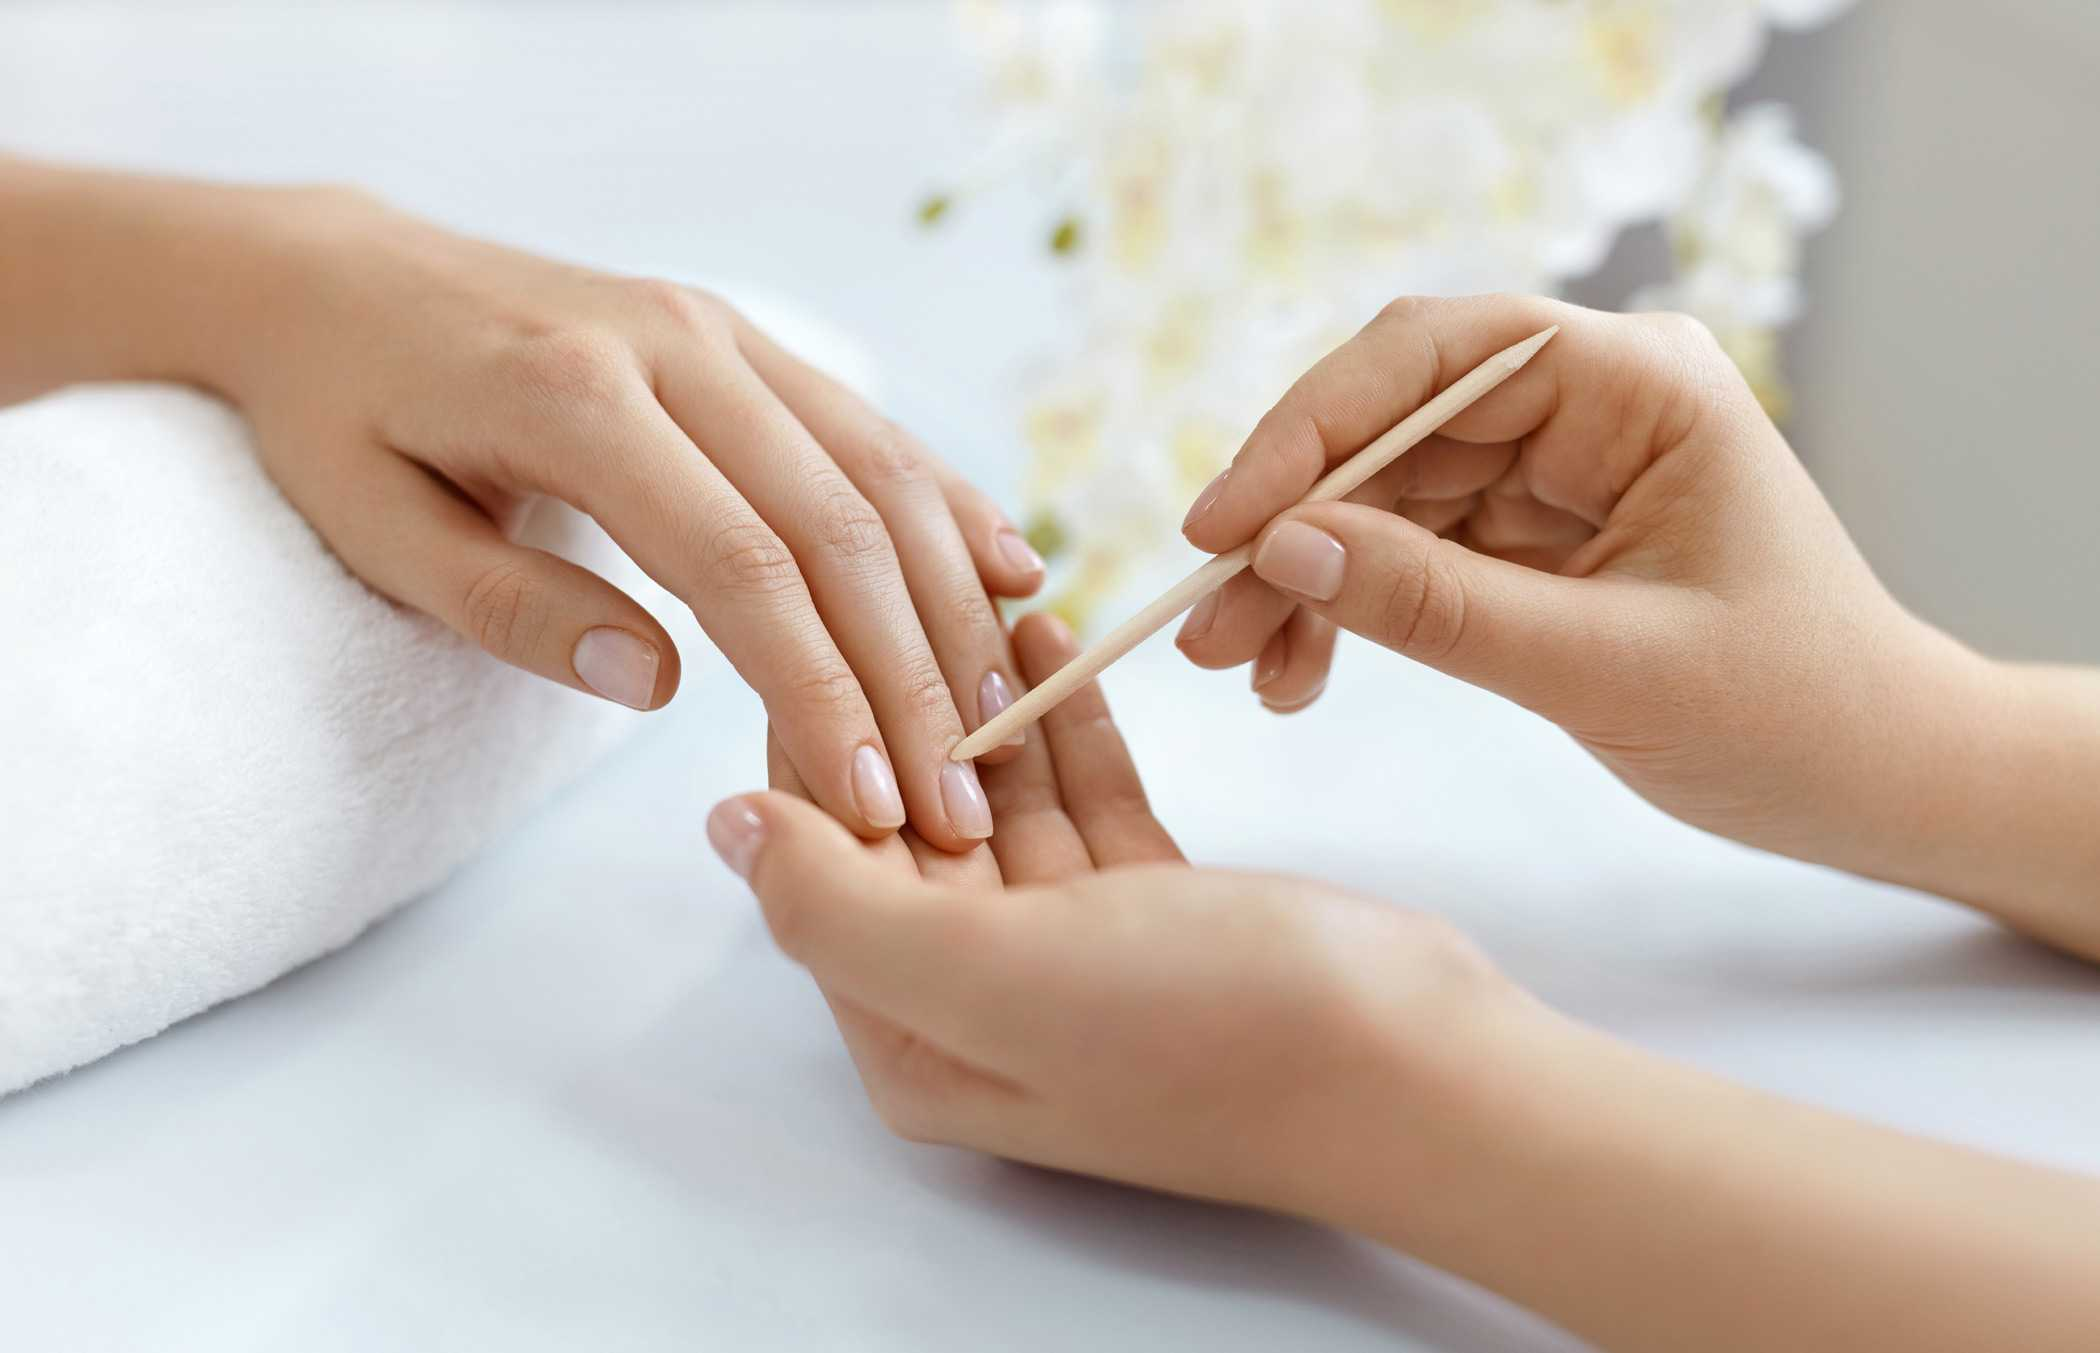 Manicure Stock Photos And Images - RF